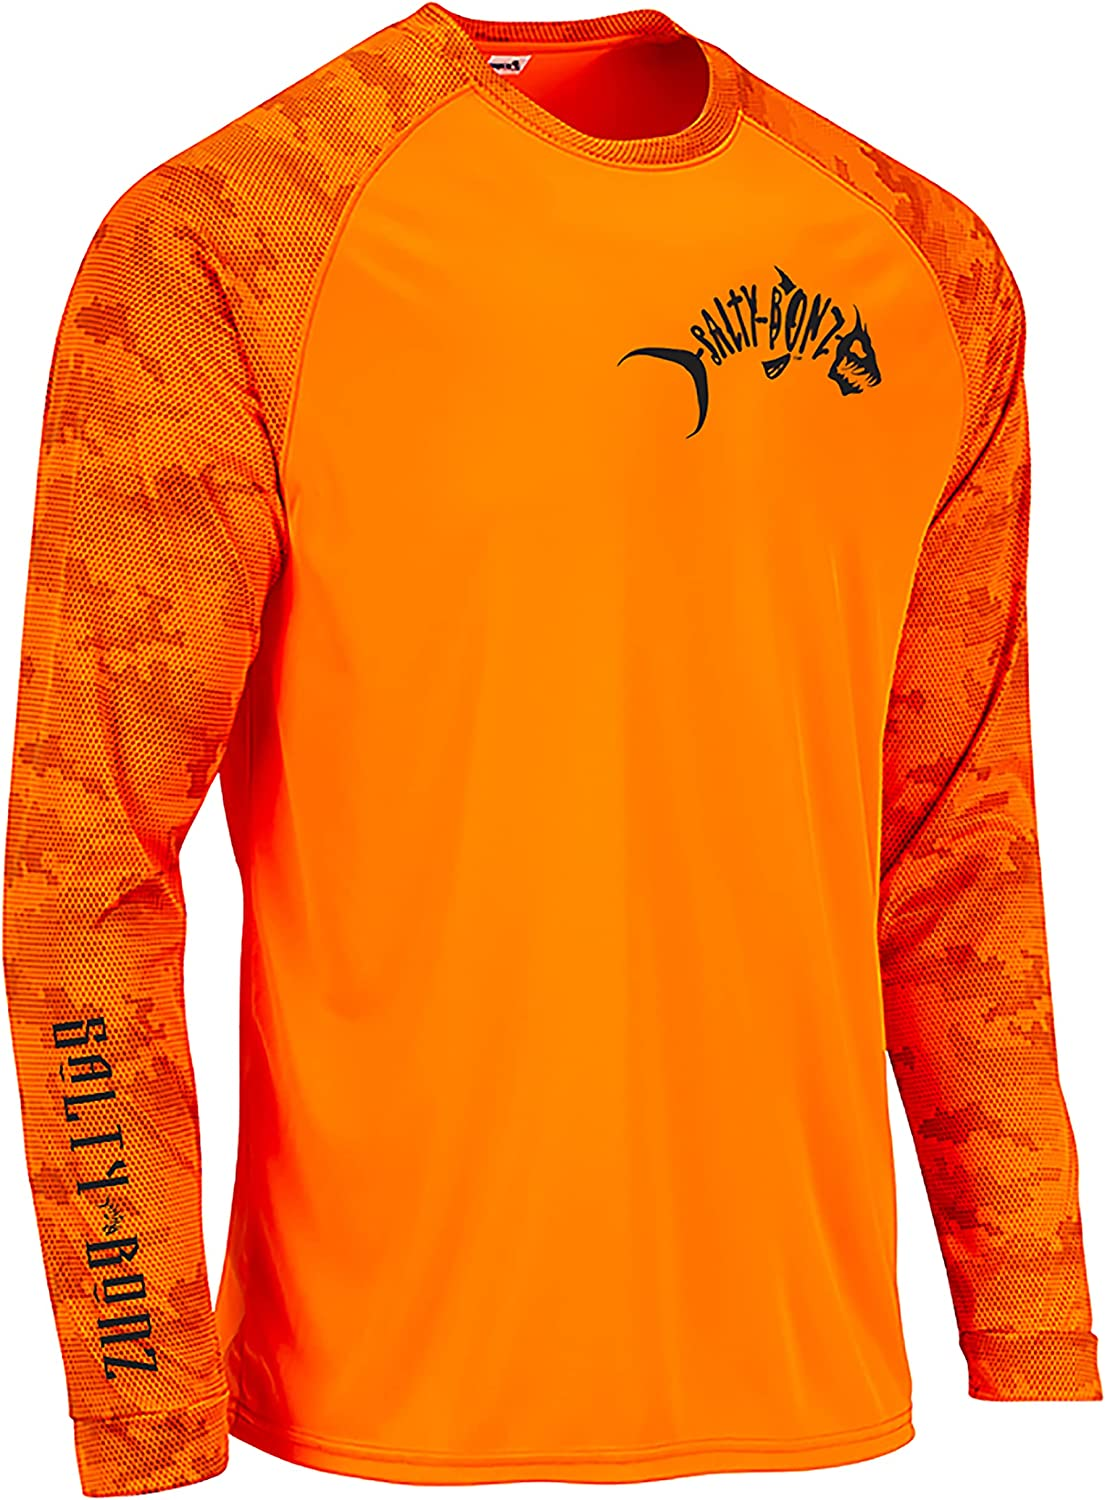 Salty Bonz Long Sleeve Moisture Wicking T- Safety and trust 50 Fishing Shirt with overseas